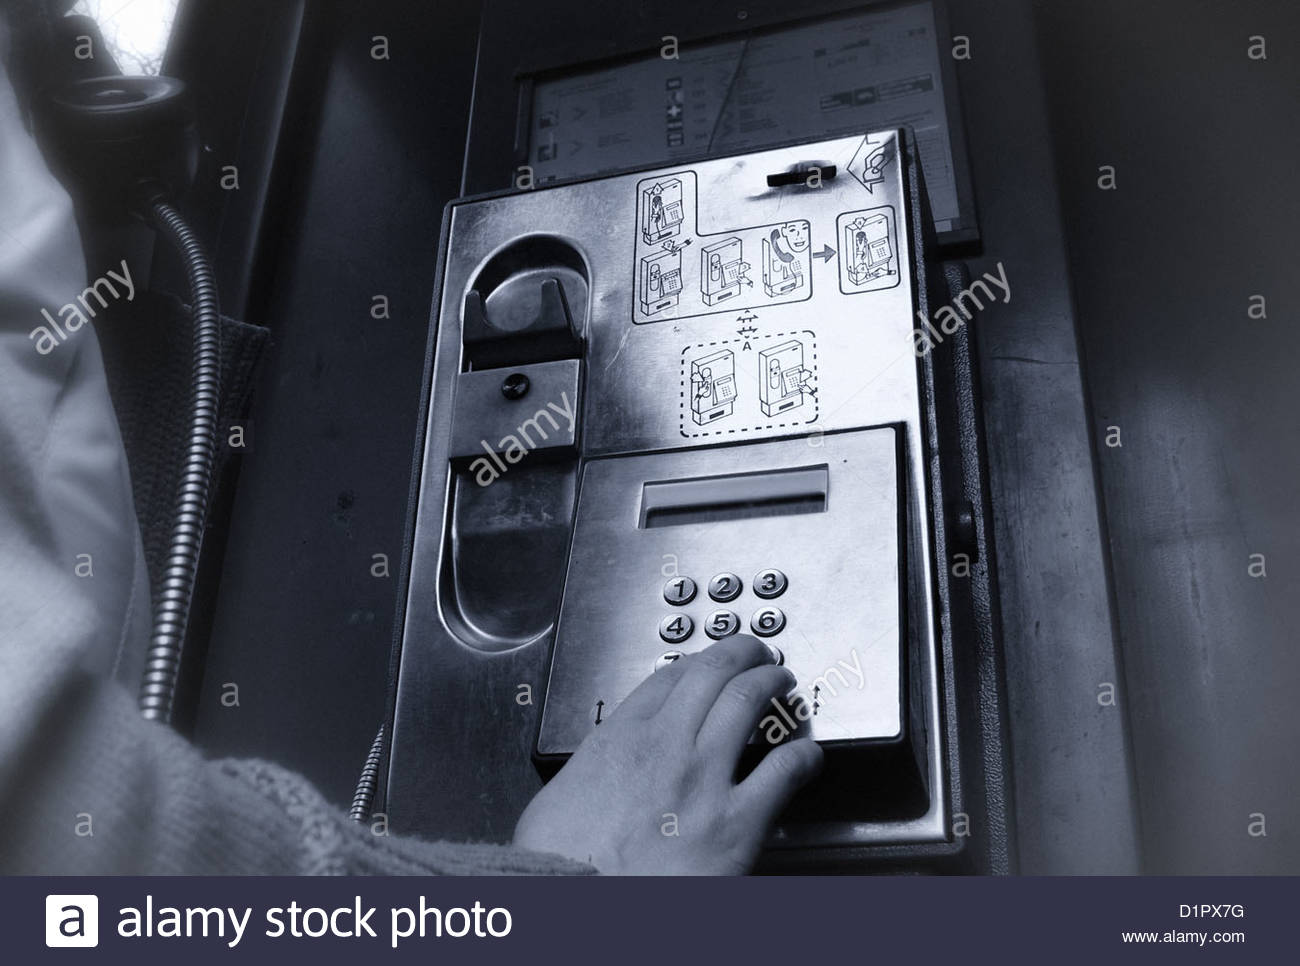 woman dialing in a public phone booth - Stock Image